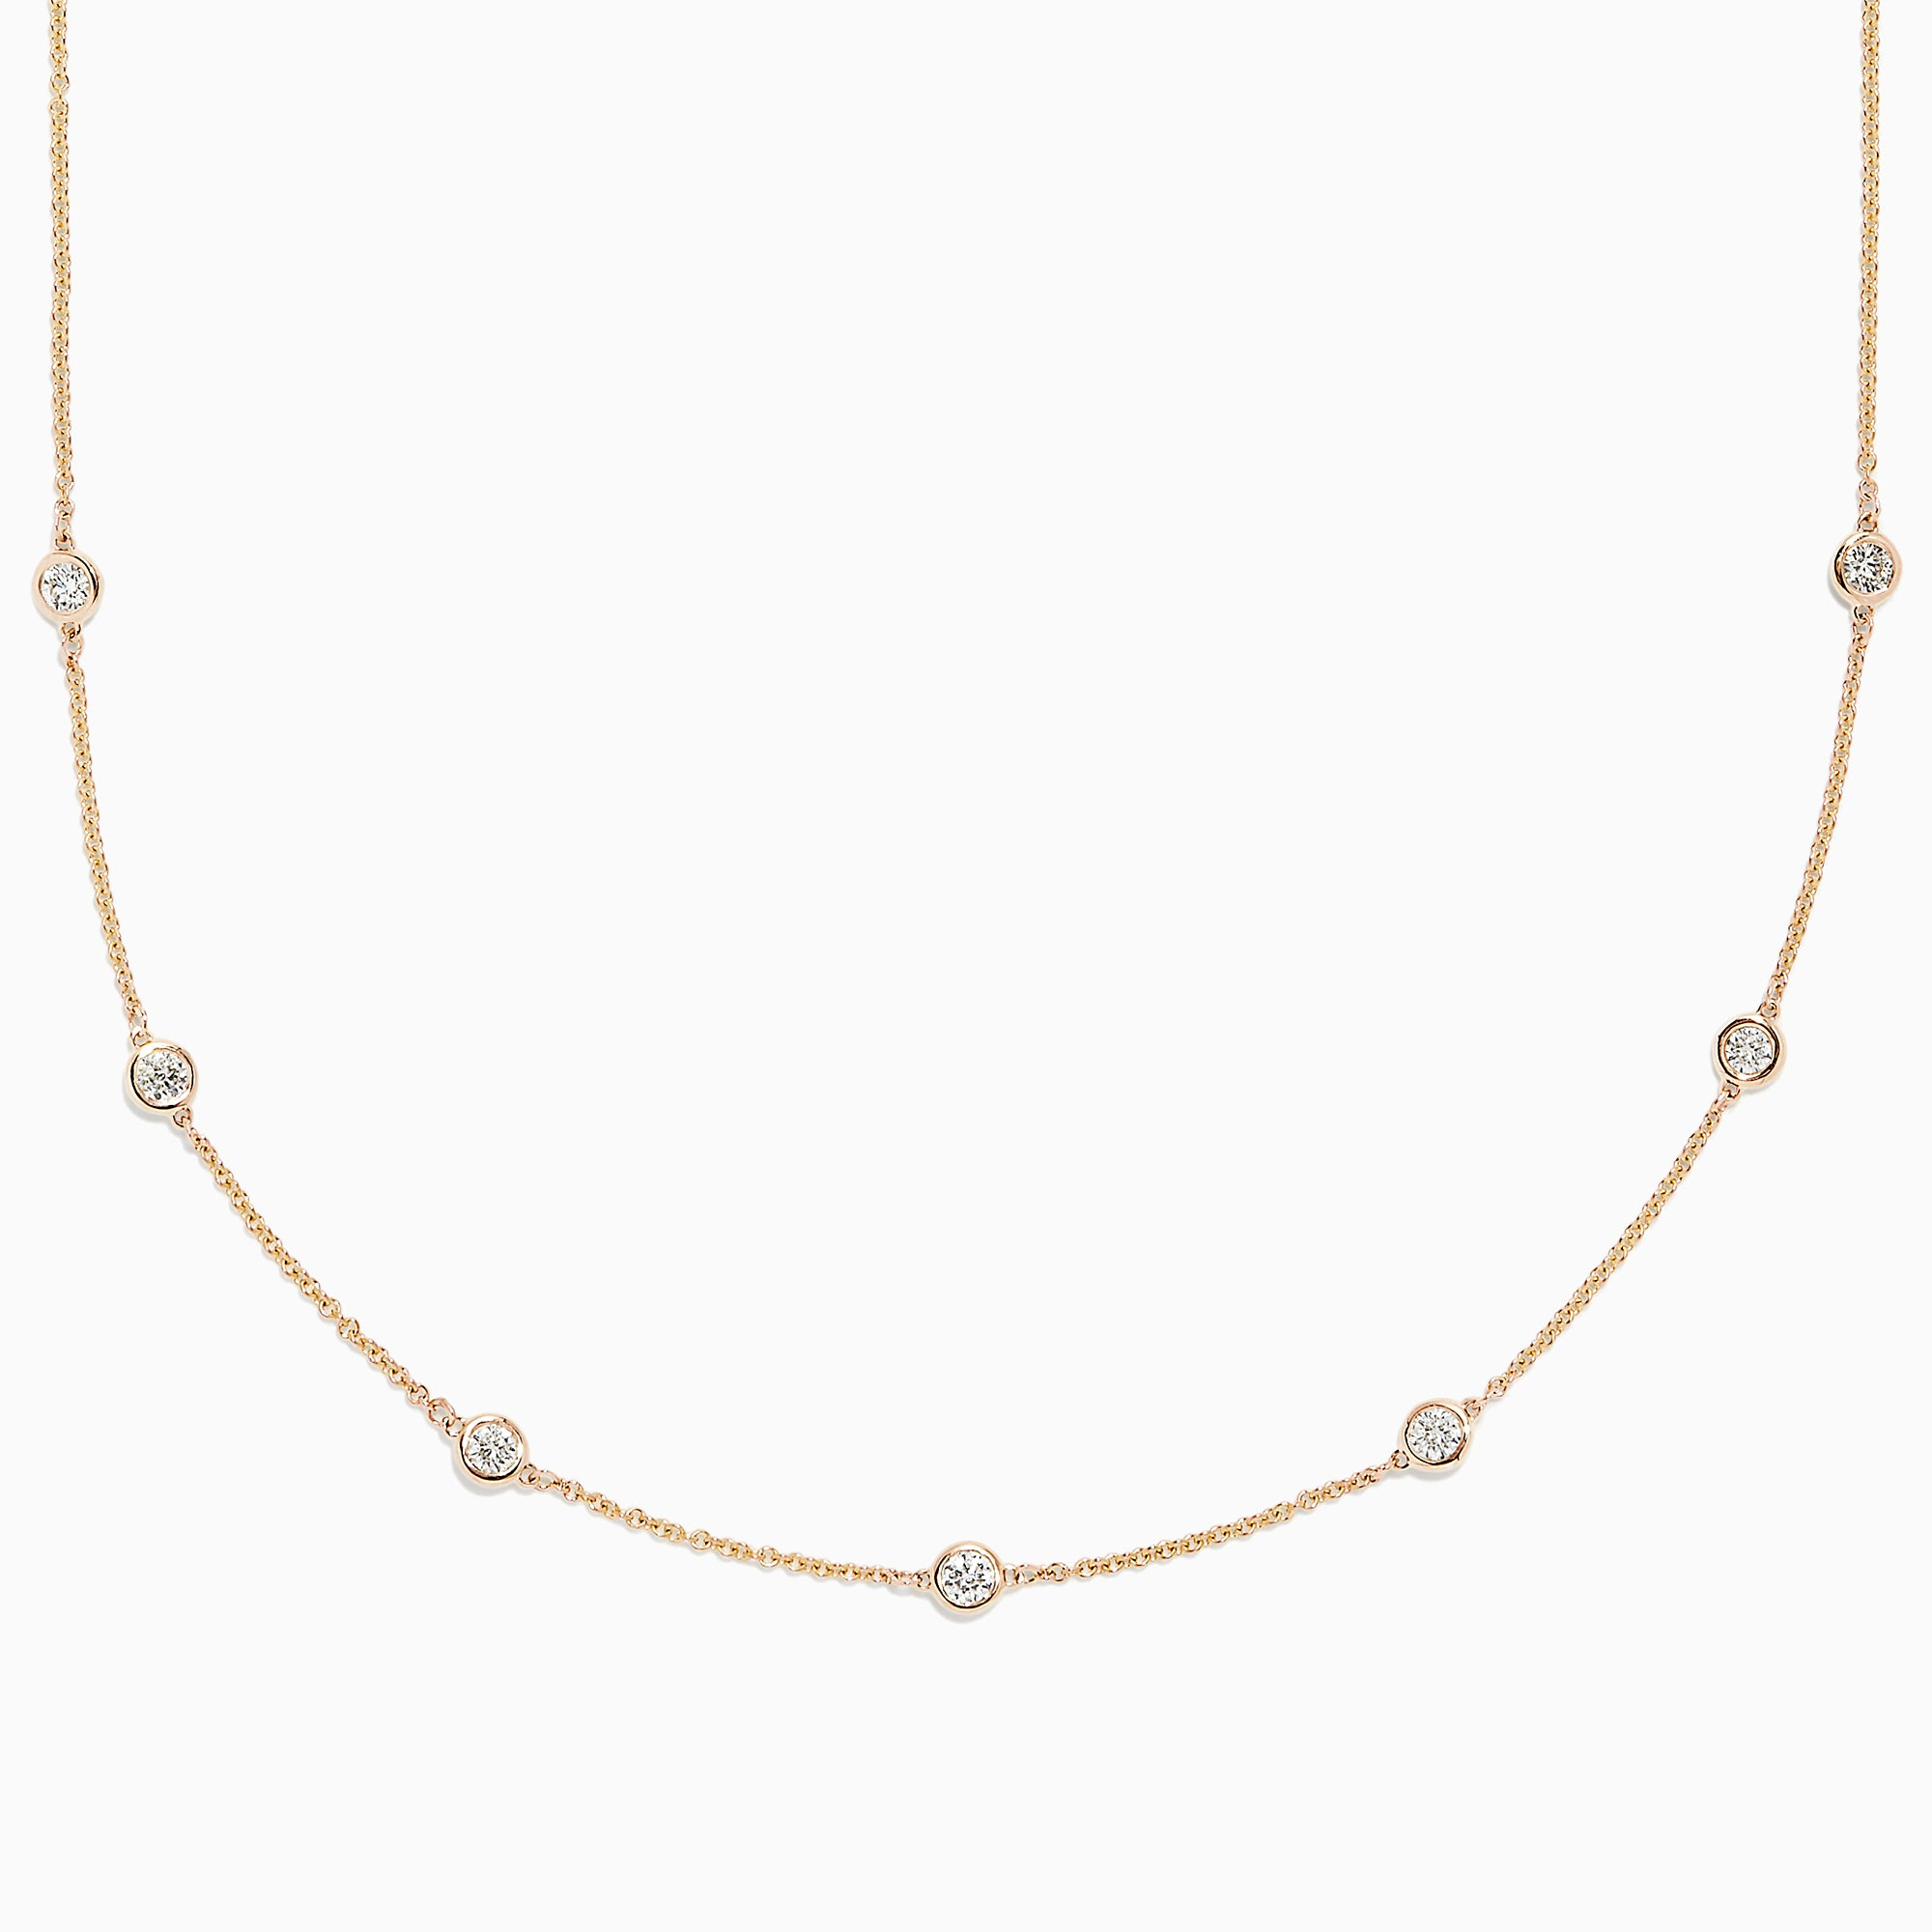 Effy D'Oro 14K Yellow Gold Diamond Station Necklace, 0.69 TCW